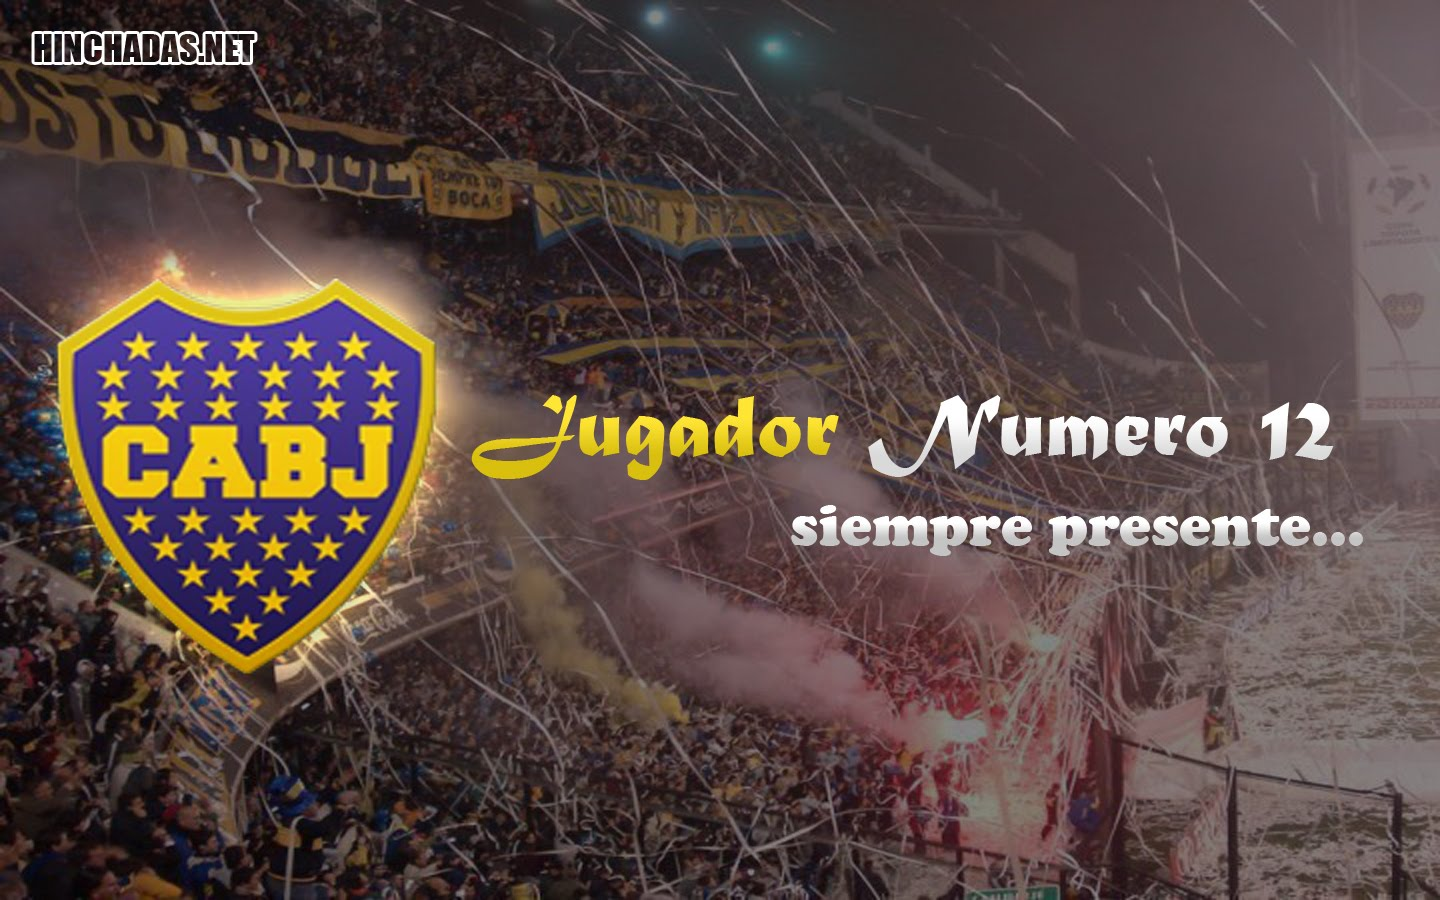 Star War Wallpaper Iphone 6 Wallpapers Hd Wallpapers Club Atletico Boca Junios